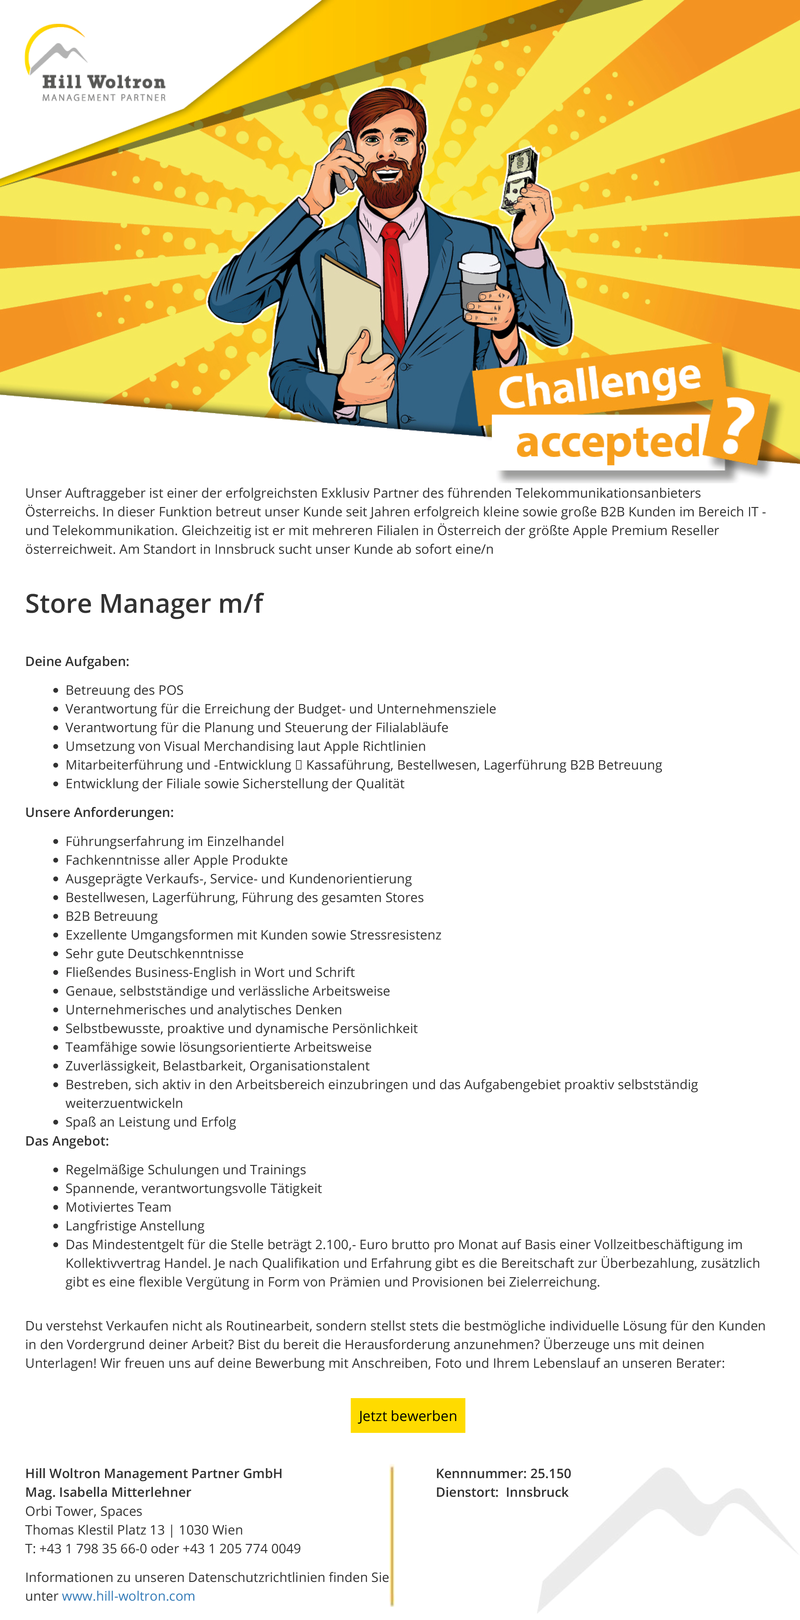 Store Manager m/f